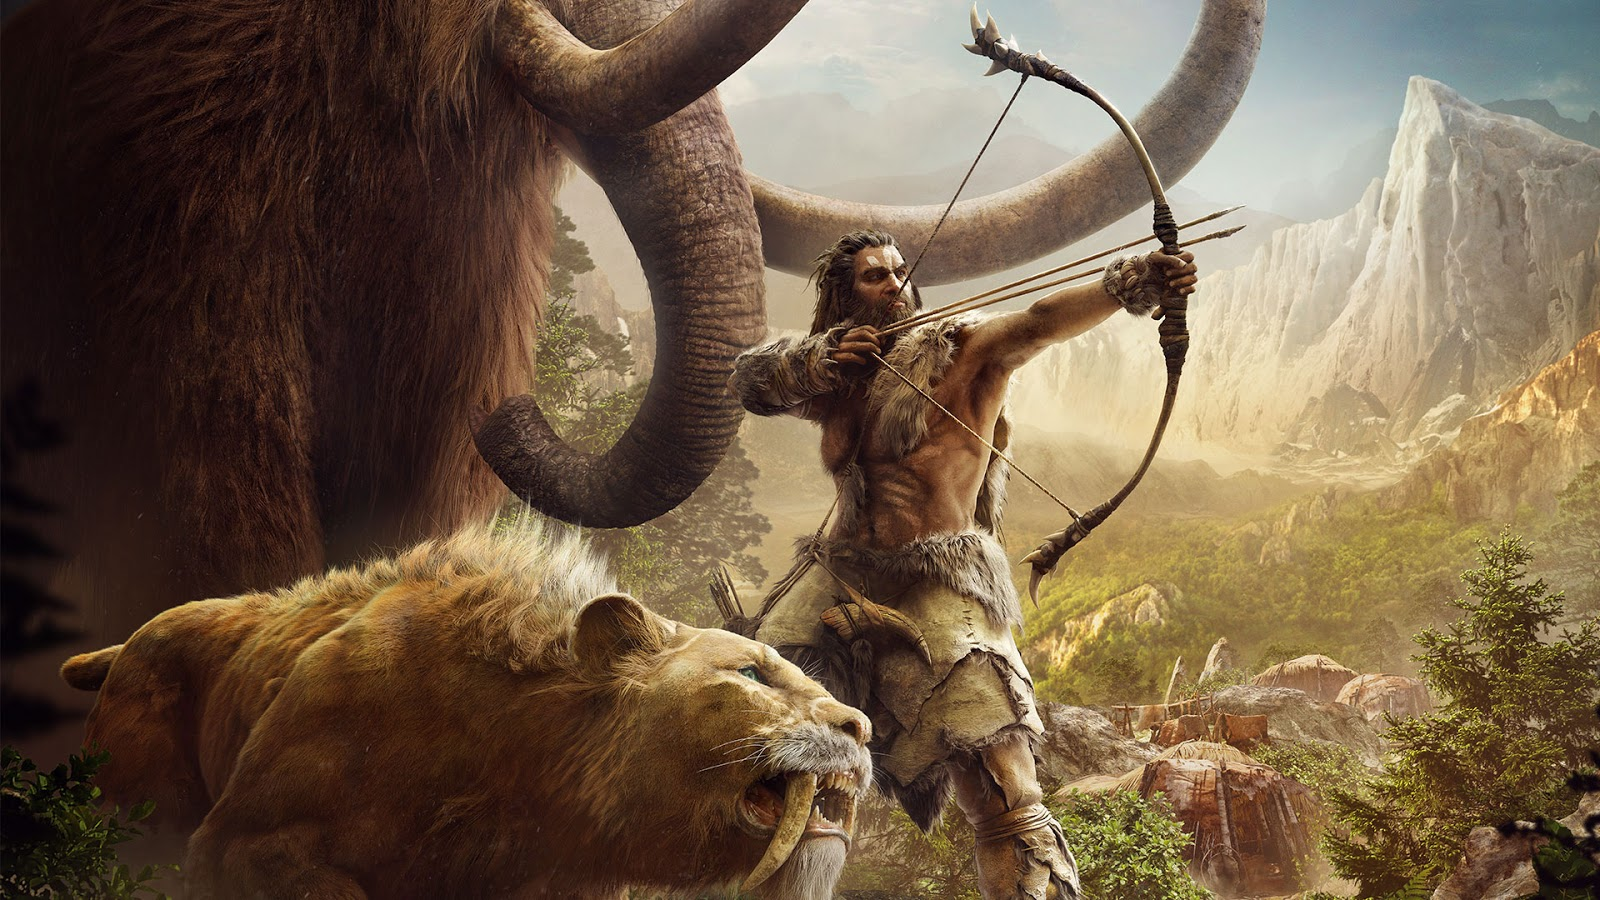 Get Five Minute Glimpse Of Far Cry Primal With New 101 Trailer